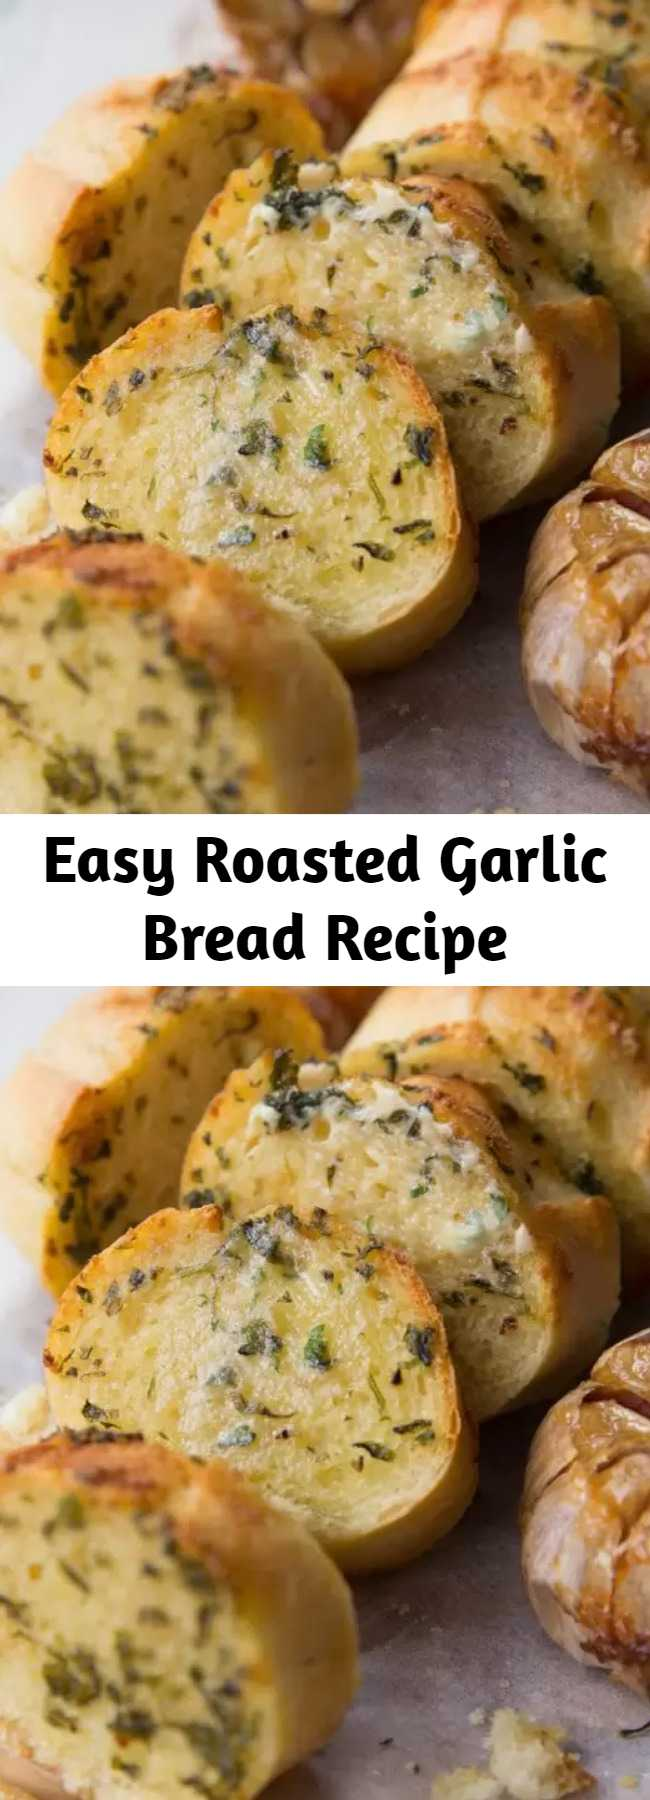 Easy Roasted Garlic Bread Recipe - Take your homemade garlic bread to the next level by using roasted garlic! Using minimal ingredients this truly is the ultimate side dish to any meal! #bread #garlicbread #sidedish #appetizer